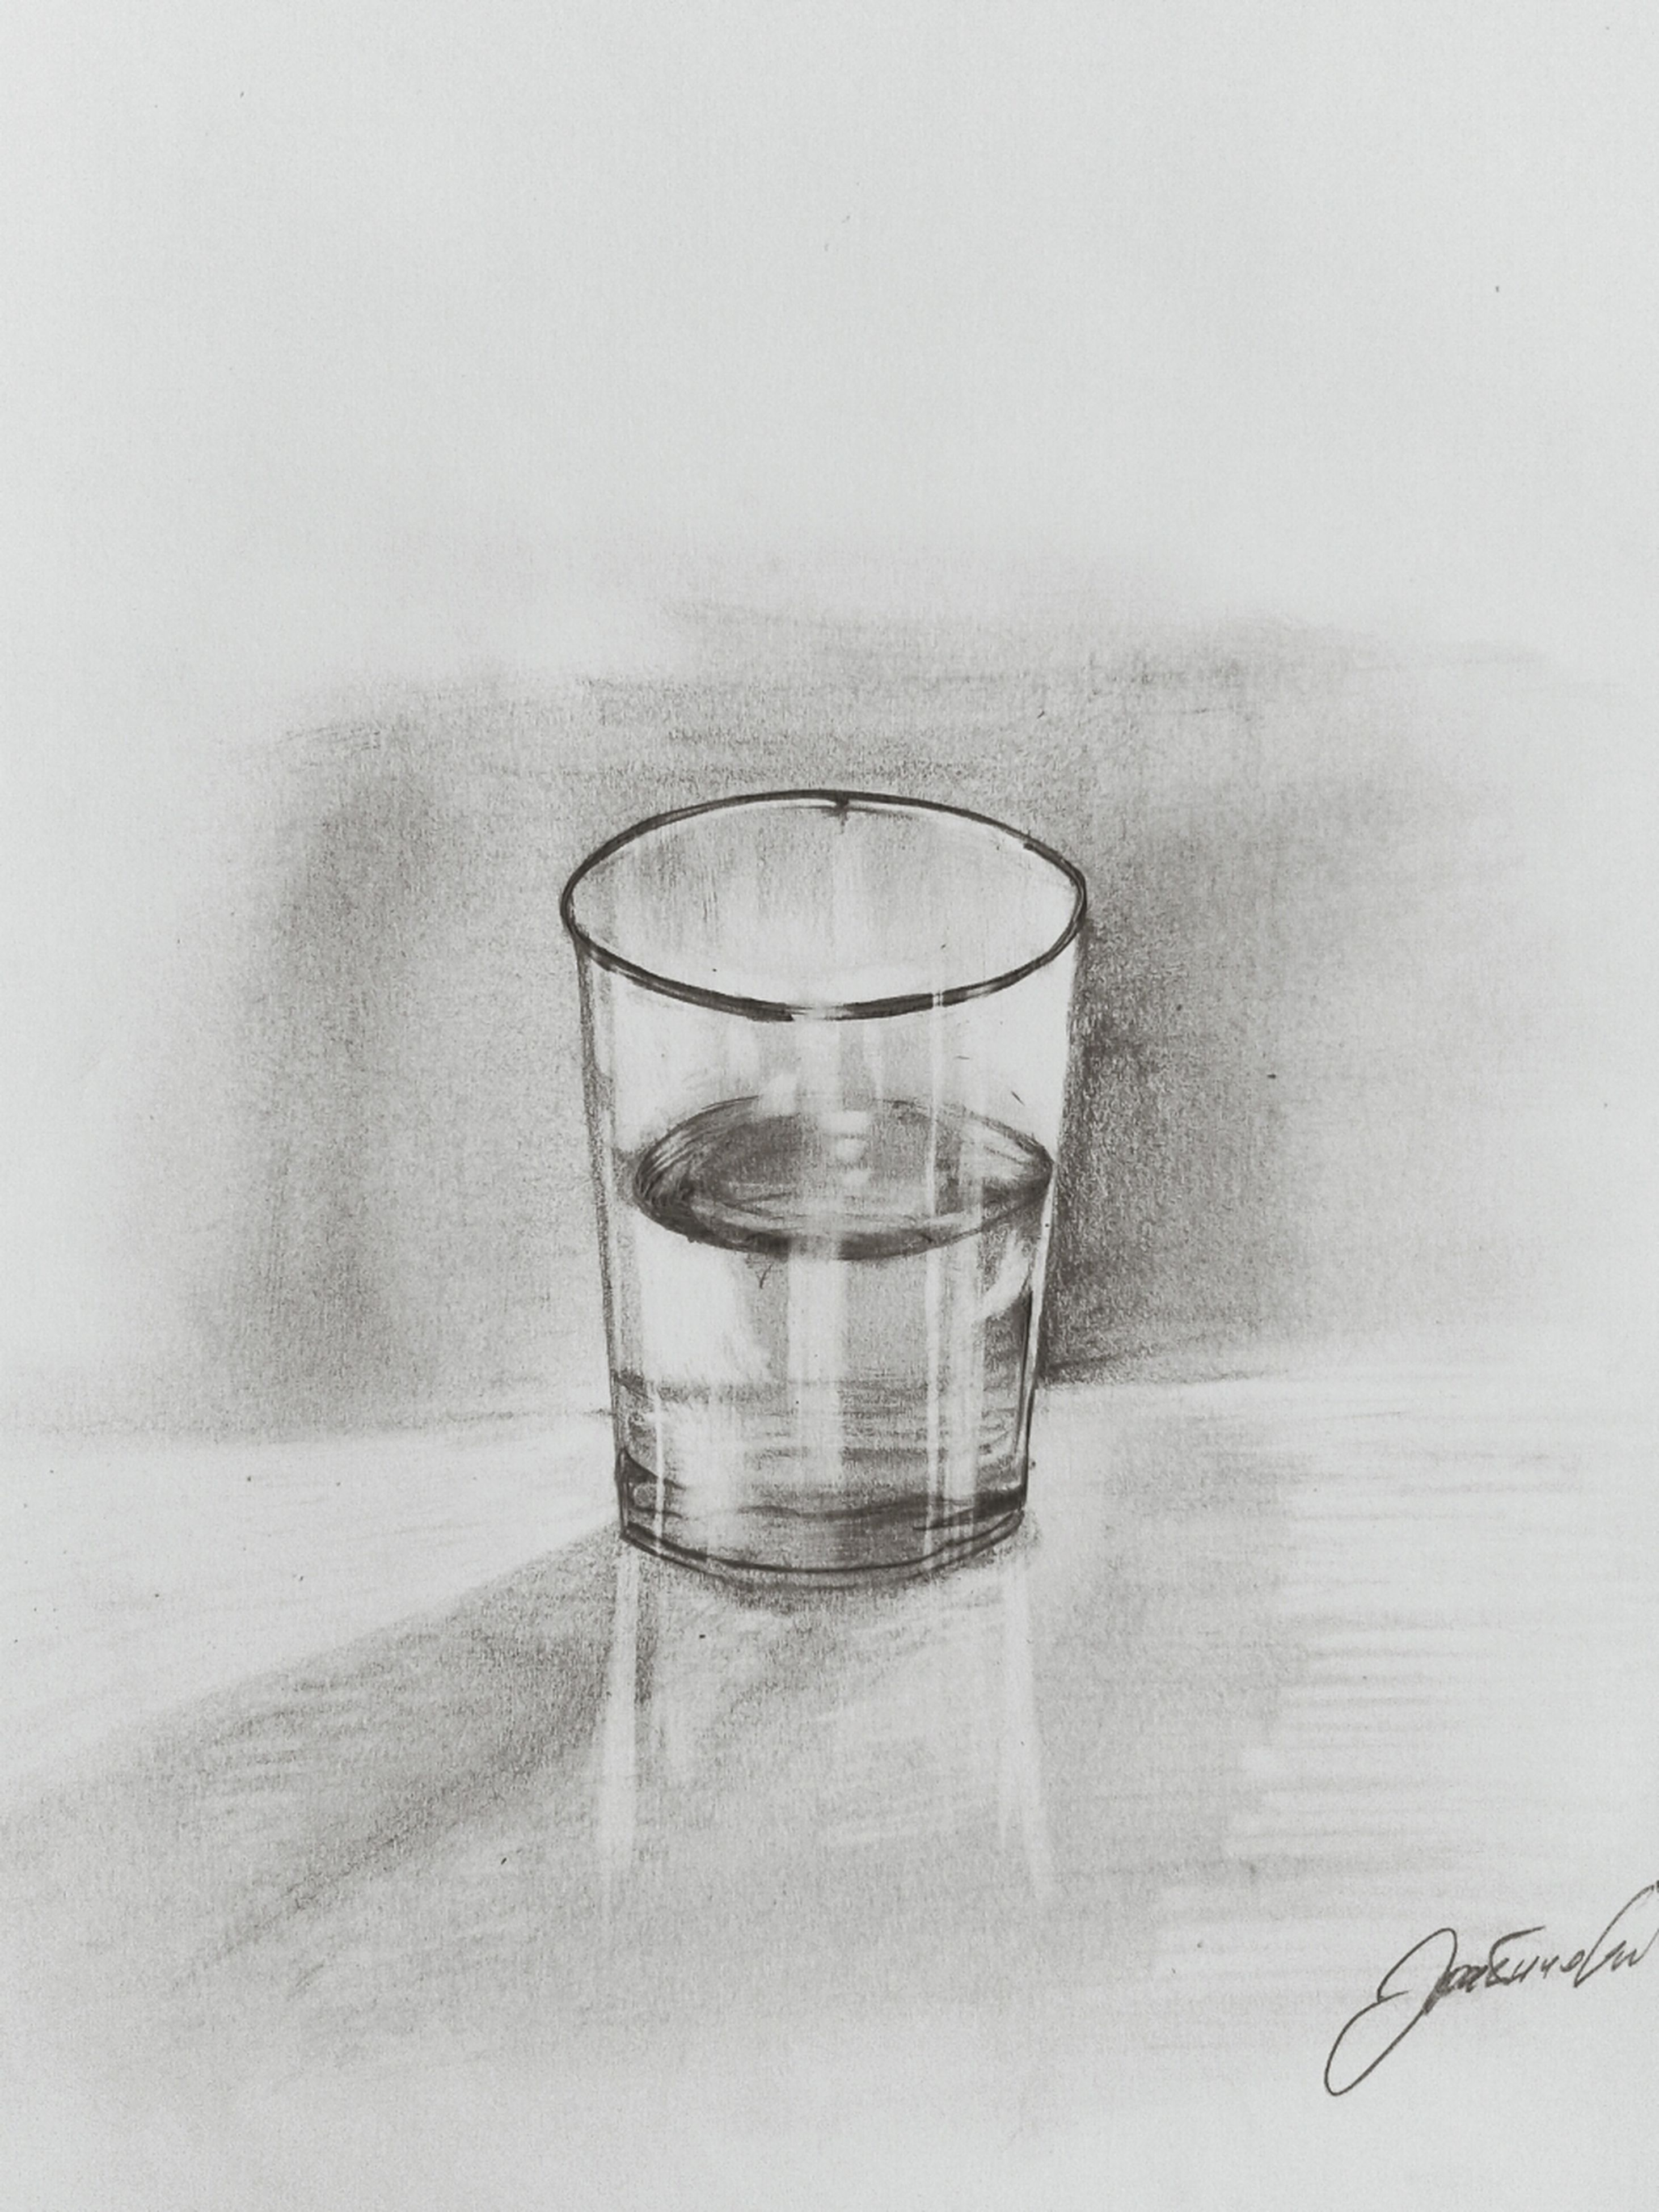 refreshment, drink, still life, food and drink, glass - material, drinking glass, indoors, white background, freshness, studio shot, close-up, transparent, table, water, copy space, glass, liquid, reflection, bottle, no people